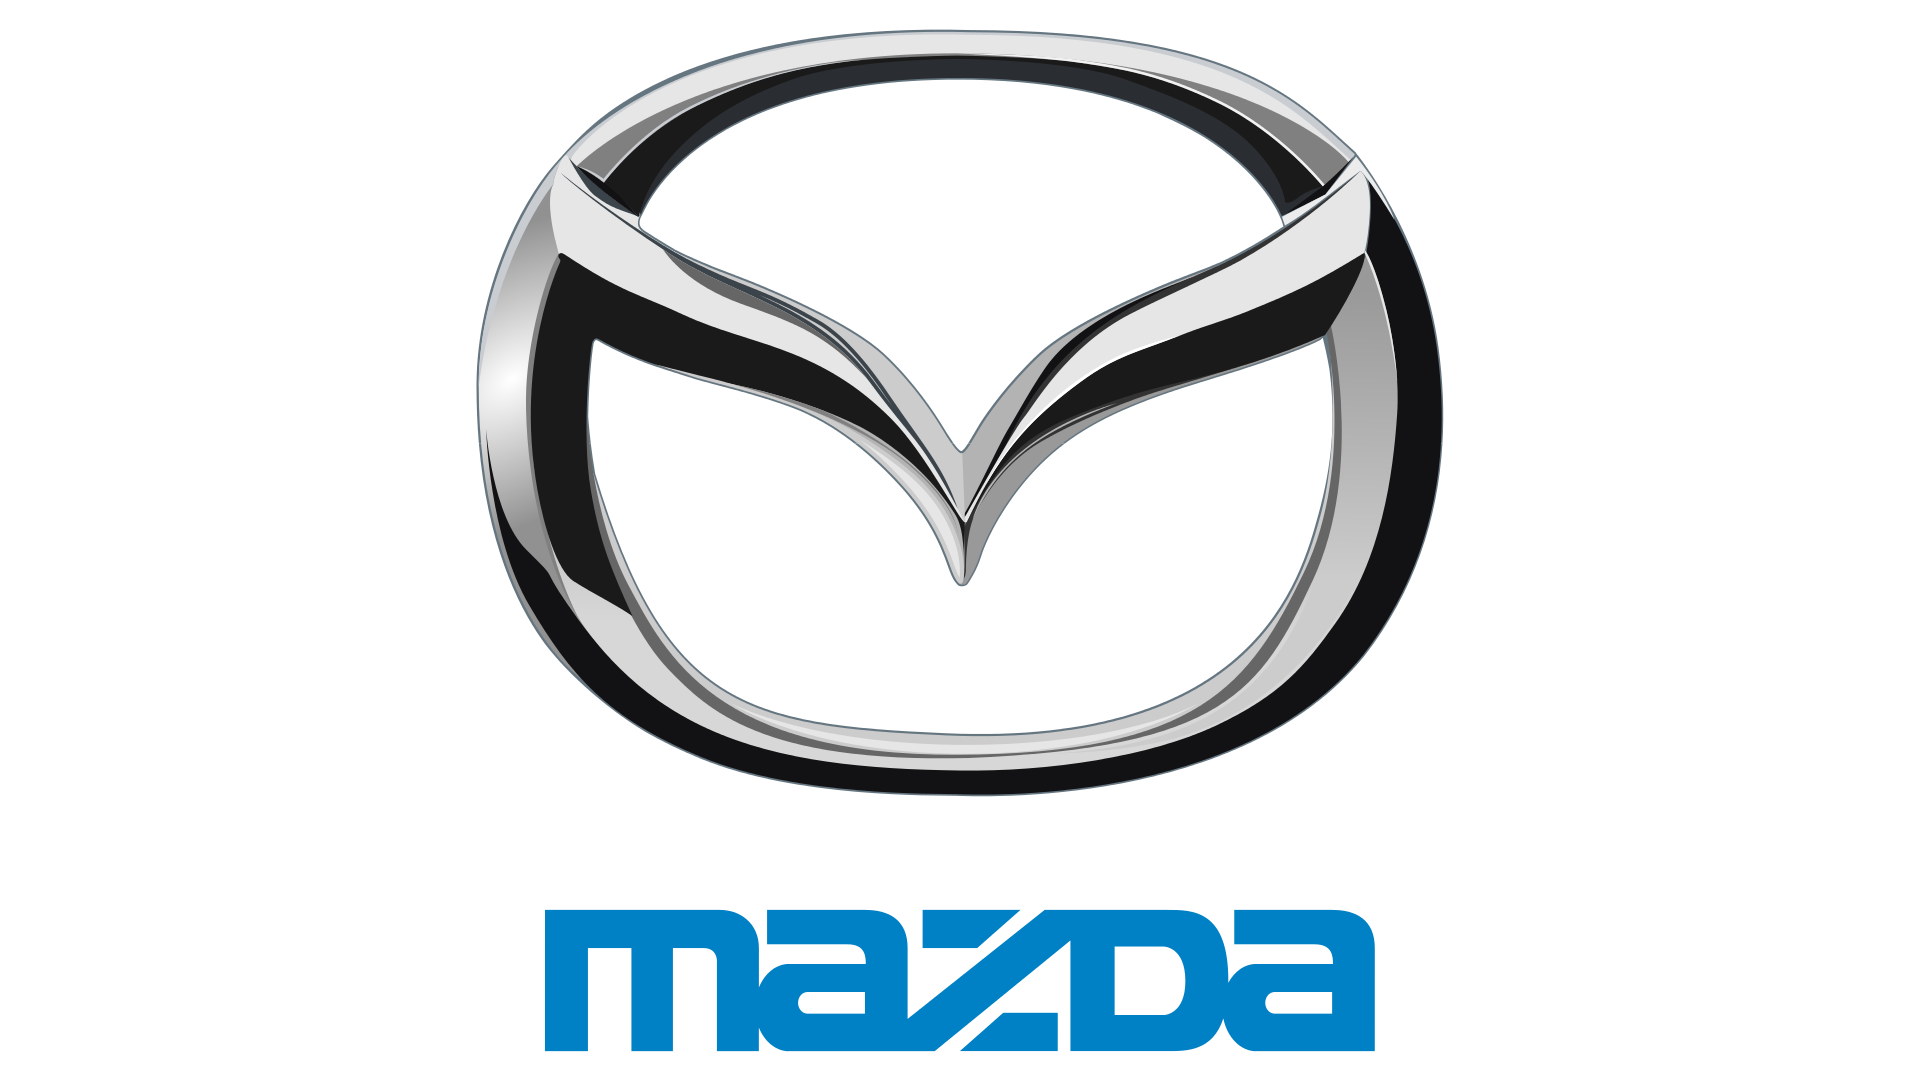 //www.searchsignals.nl/wp-content/uploads/2019/03/Mazda-logo.png